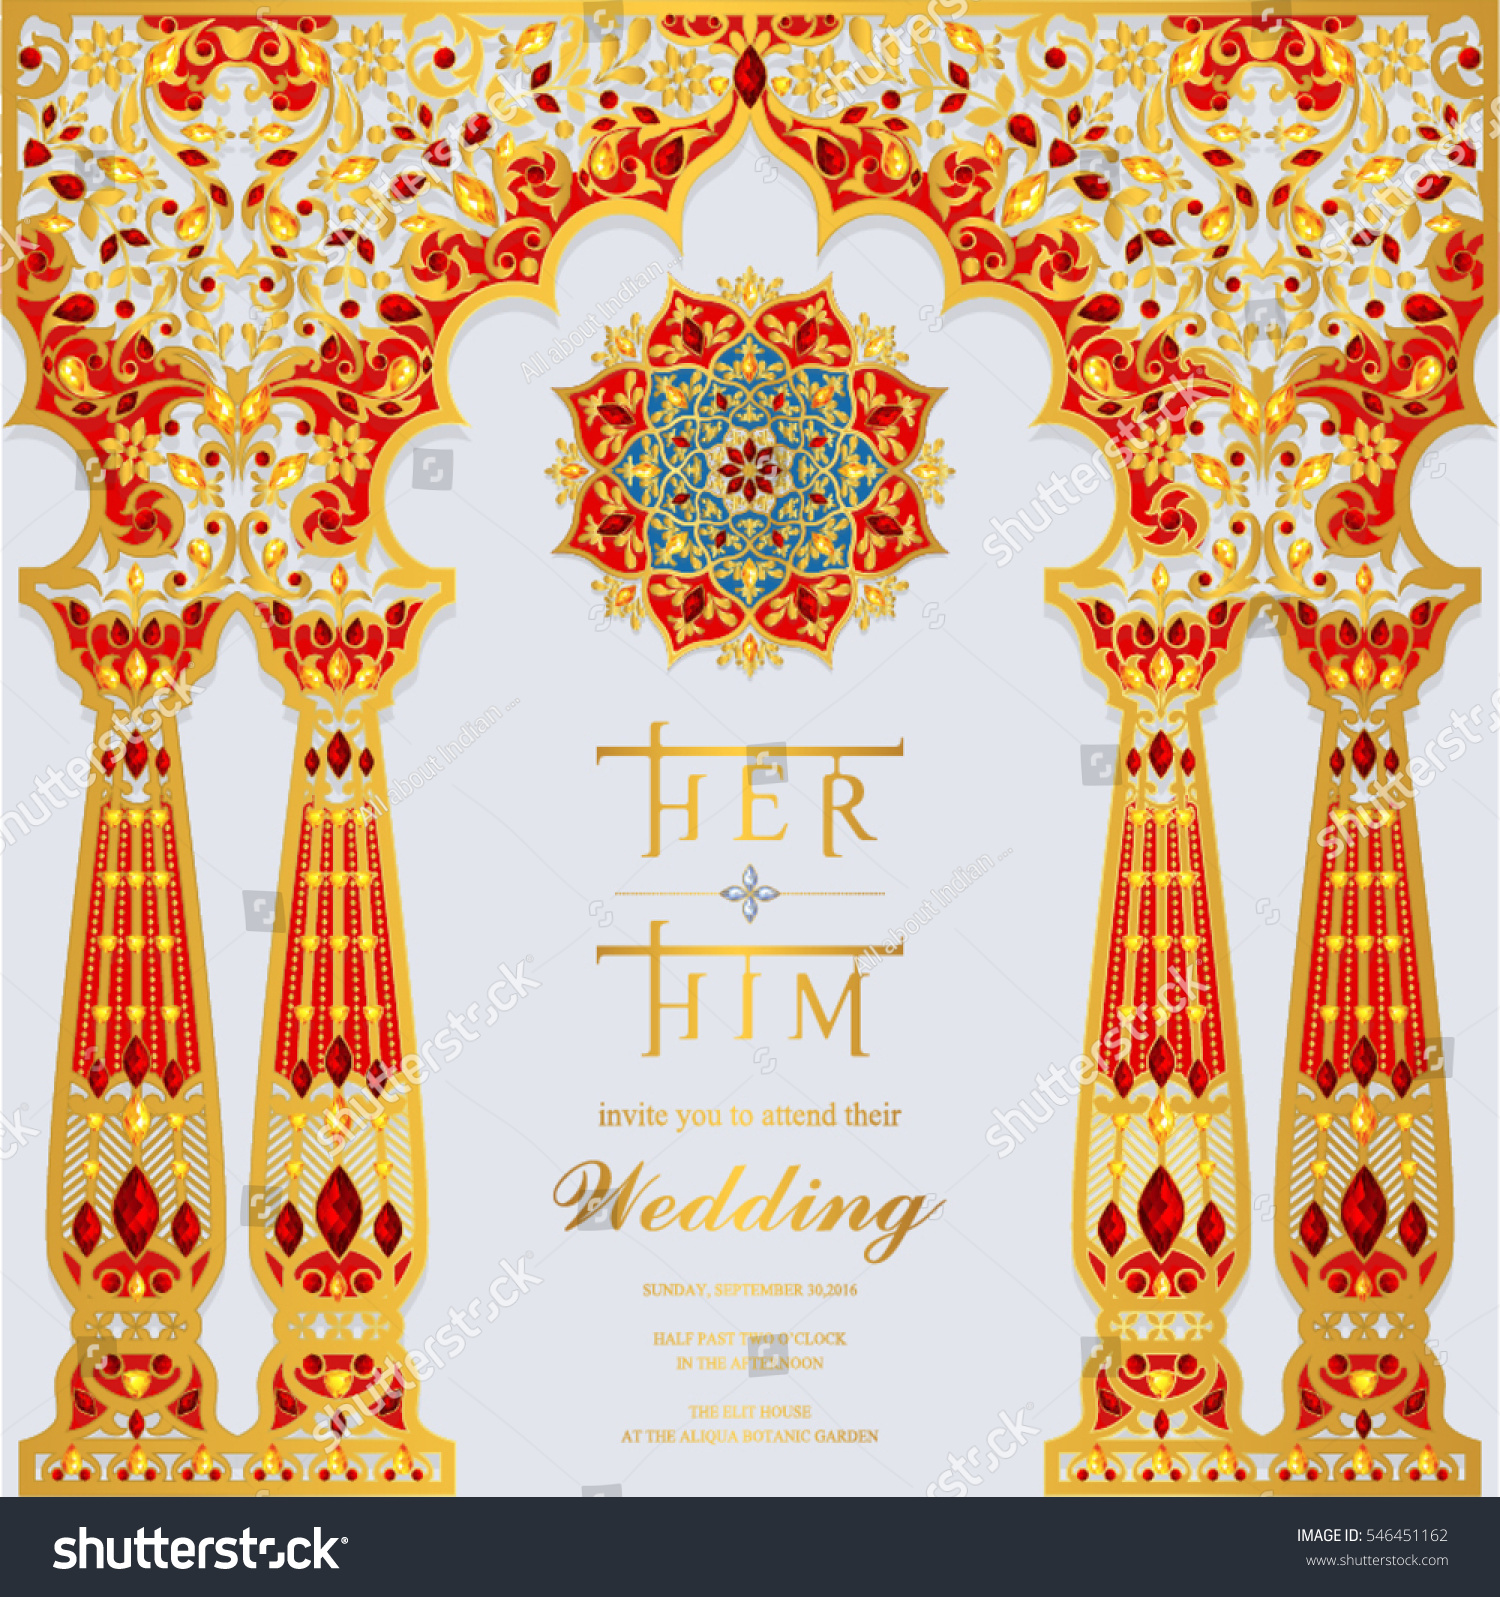 Indian Wedding Invitation Card Templates With Gold Patterned And Crystals On Paper Color Square Size